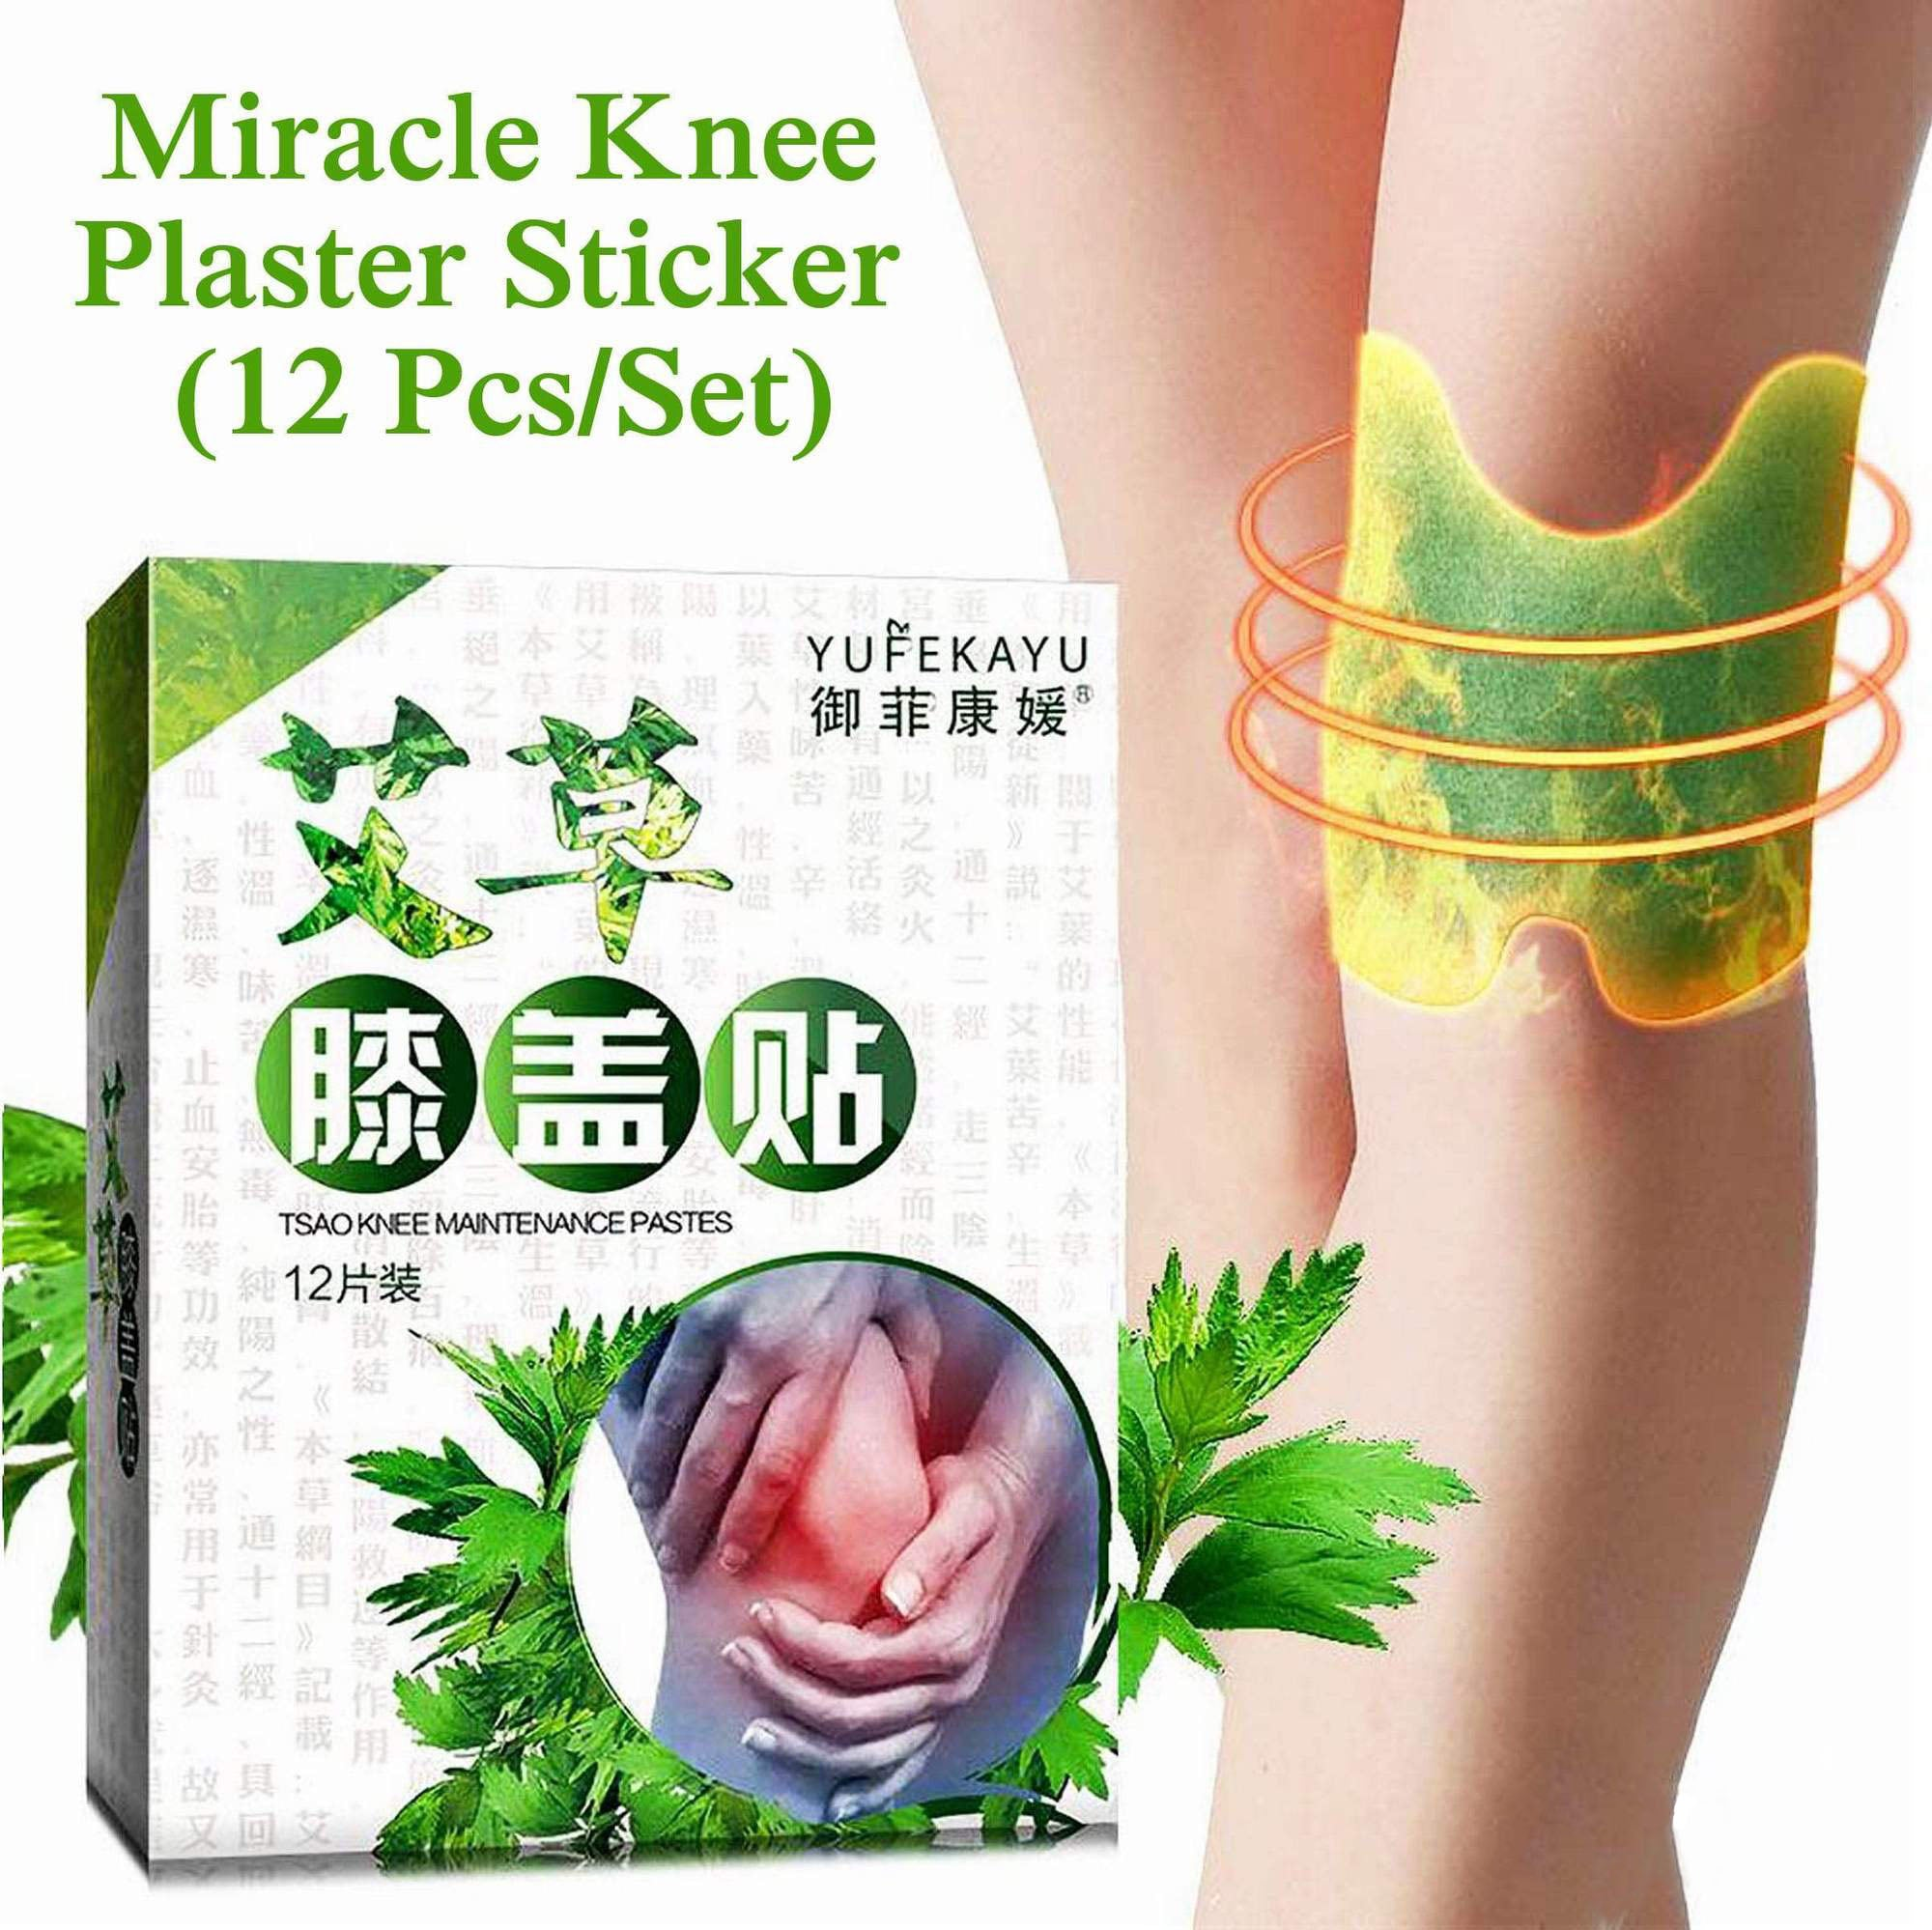 1x Miracle Knee Plaster Sticker Set (40% OFF)